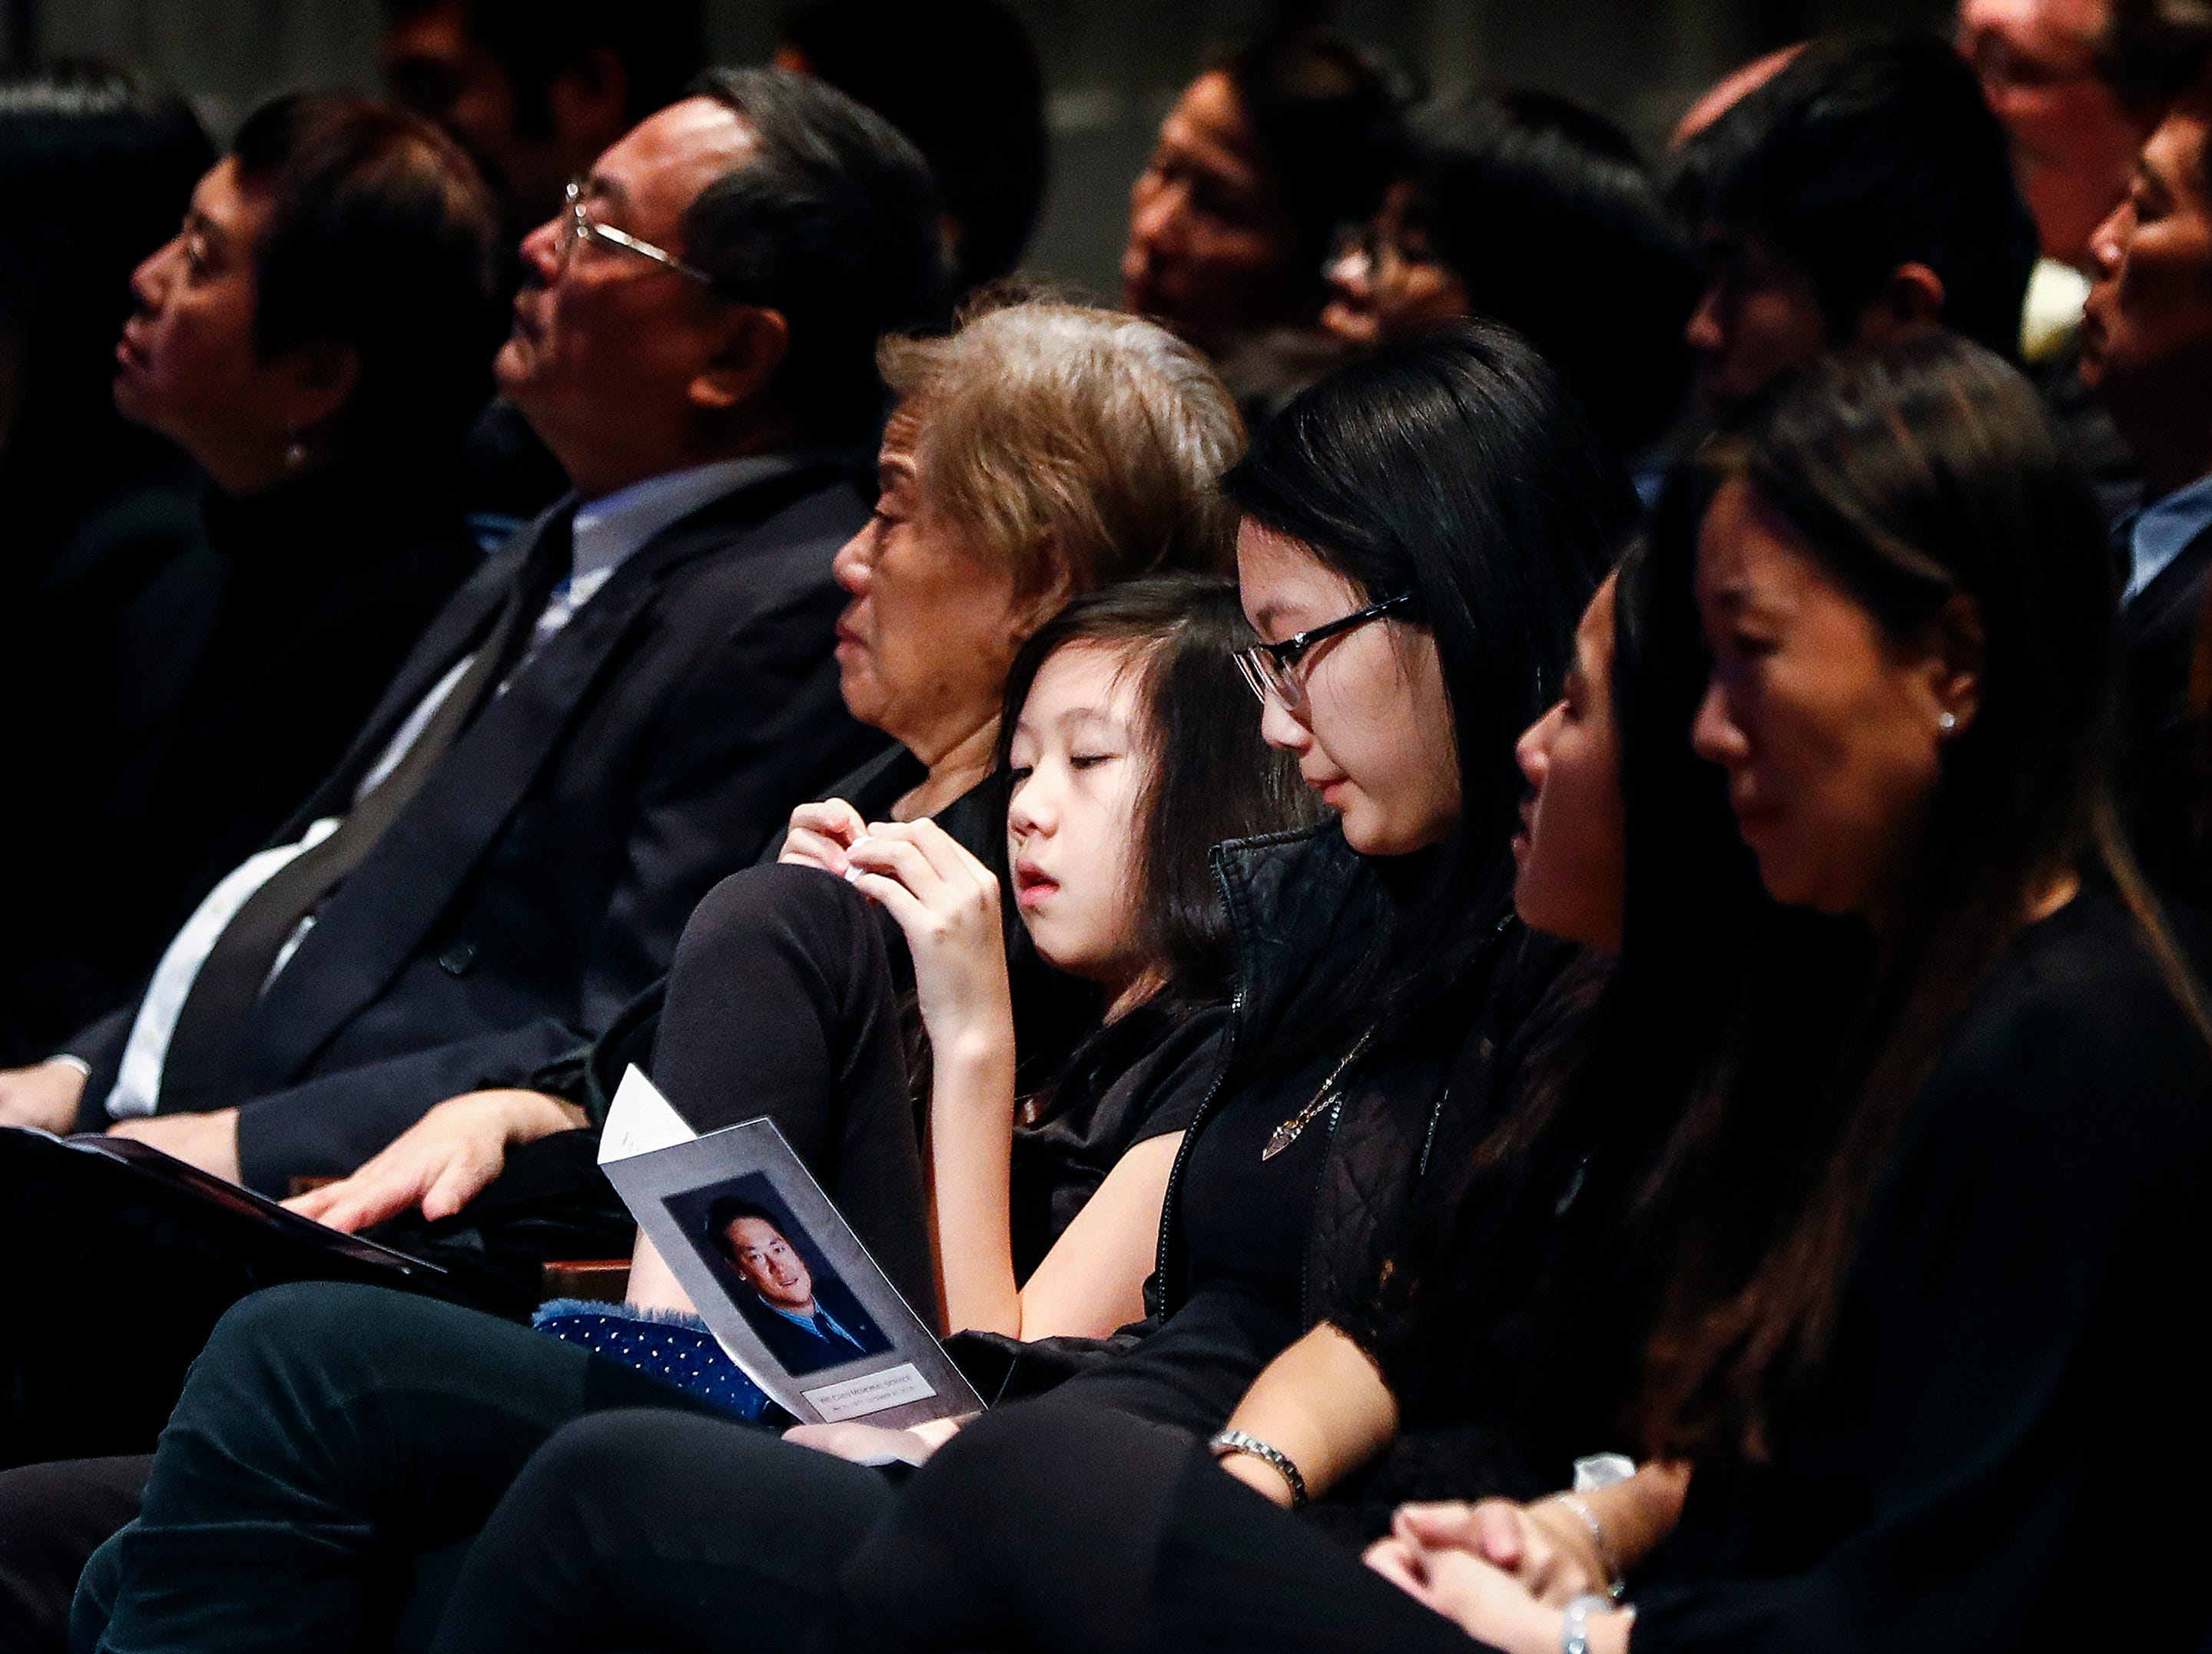 Family members attend a memorial service for Wei Chen, a Memphis businessman who died along with three other people in a plane crash in Georgia.